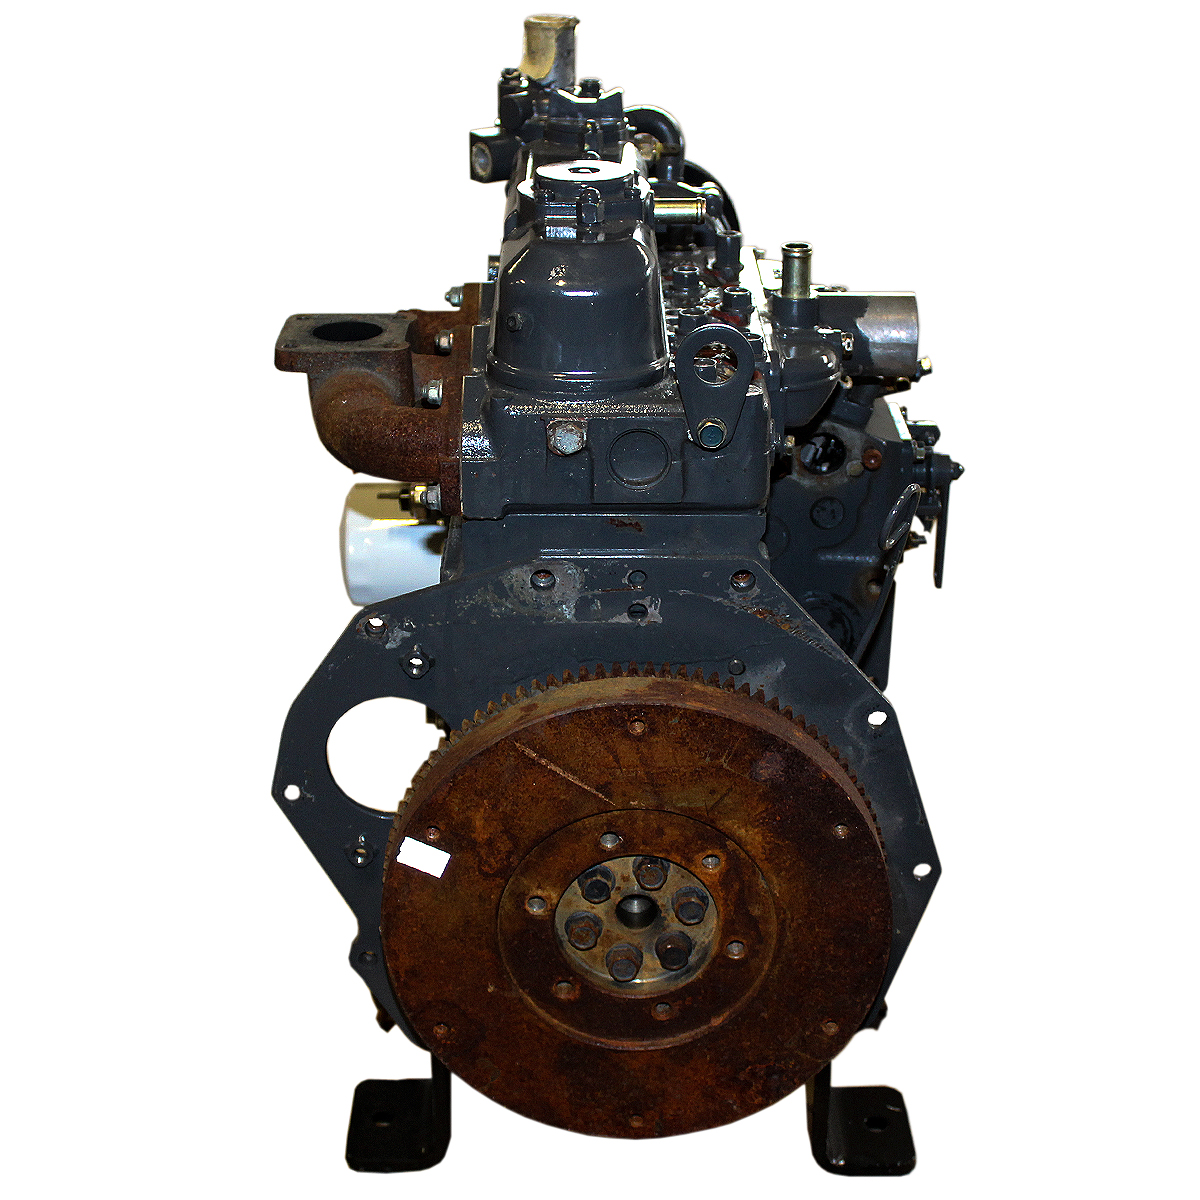 D1105-EU2 1G995-52000 24.8hp@3000 RPM D1105 3 cylinder diesel basic engine, (No Muffler, Radiator, Fuel Shutoff) Test Engine Kubota Diesel Engine